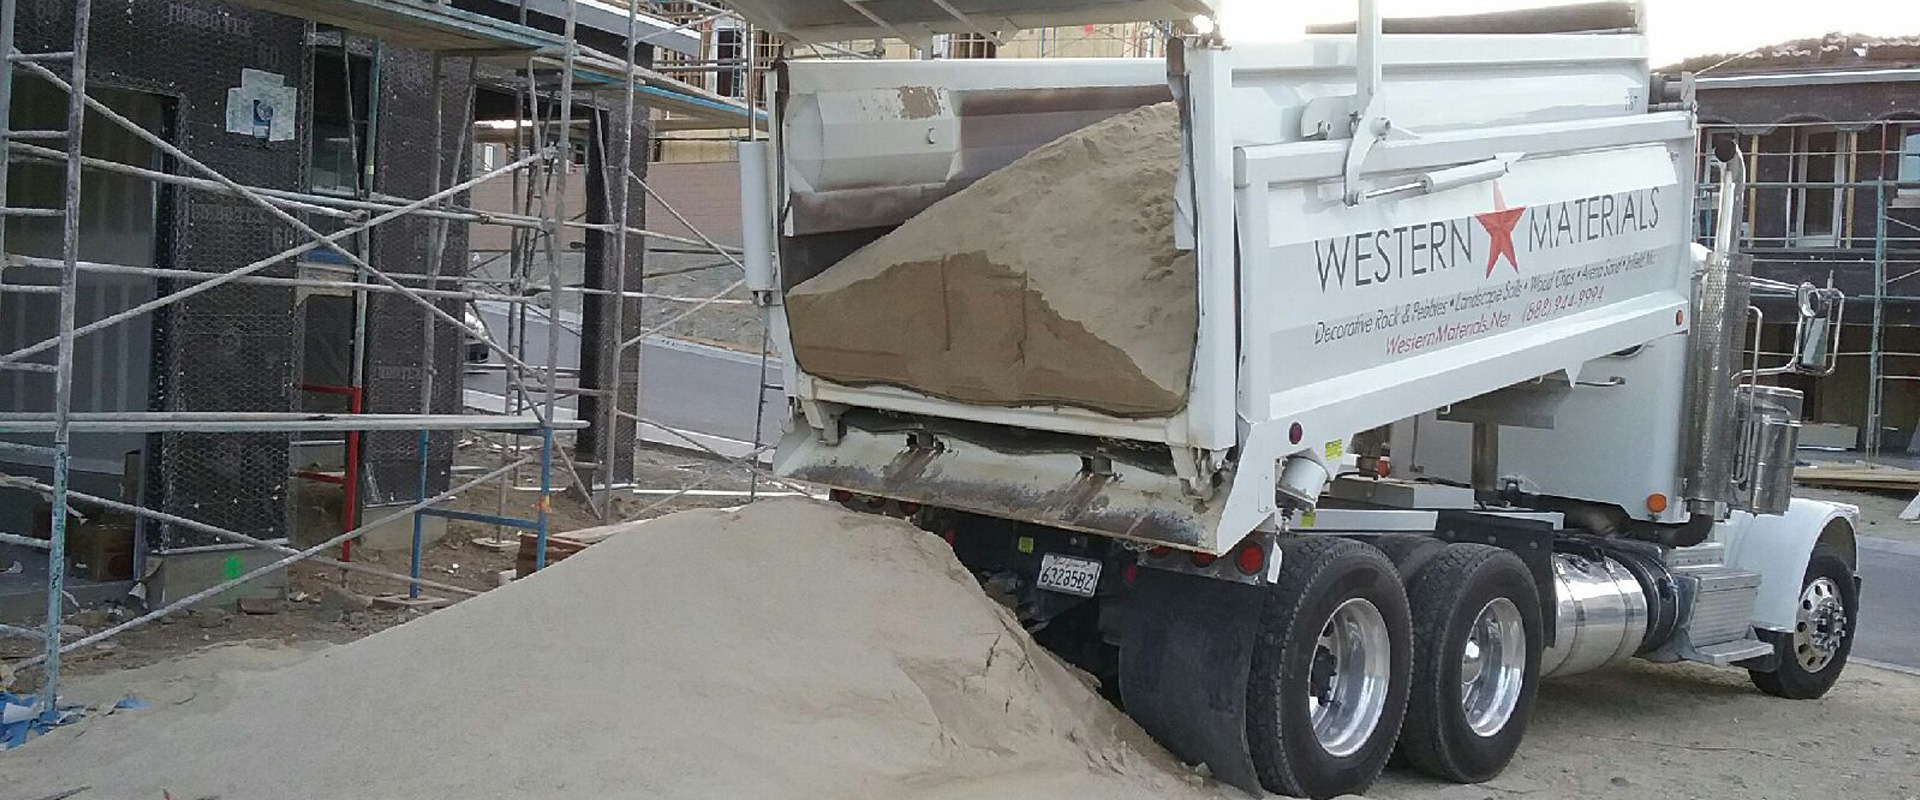 dump truck carrying sand